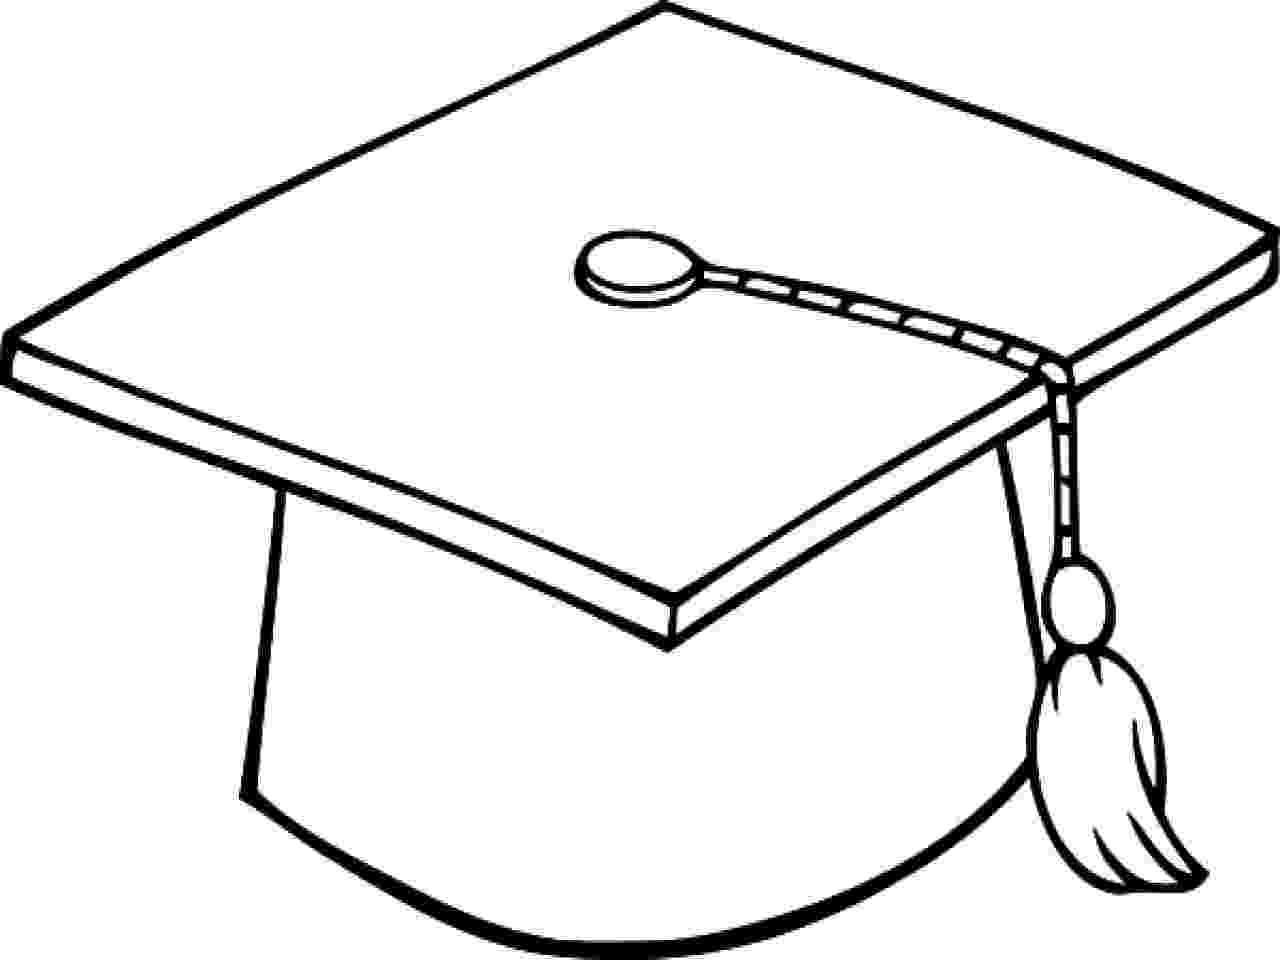 graduation cap coloring page image result for graduation cap template templates coloring page graduation cap